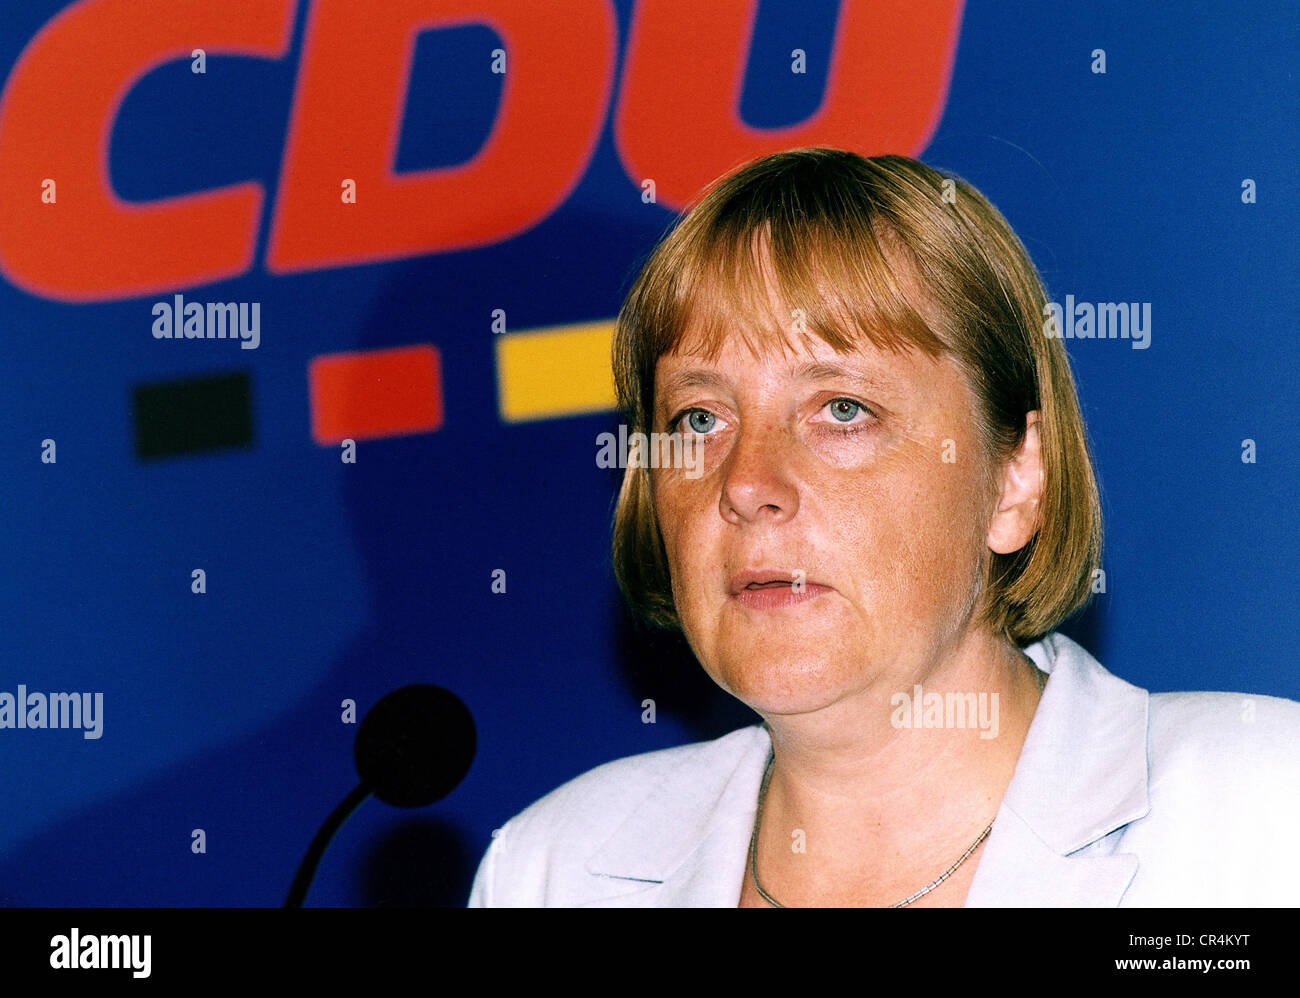 Merkel, Angela Dorothea, * 17.7.1954, German politician (CDU), portrait, as federal chairwoman of the CDU, giving - Stock Image